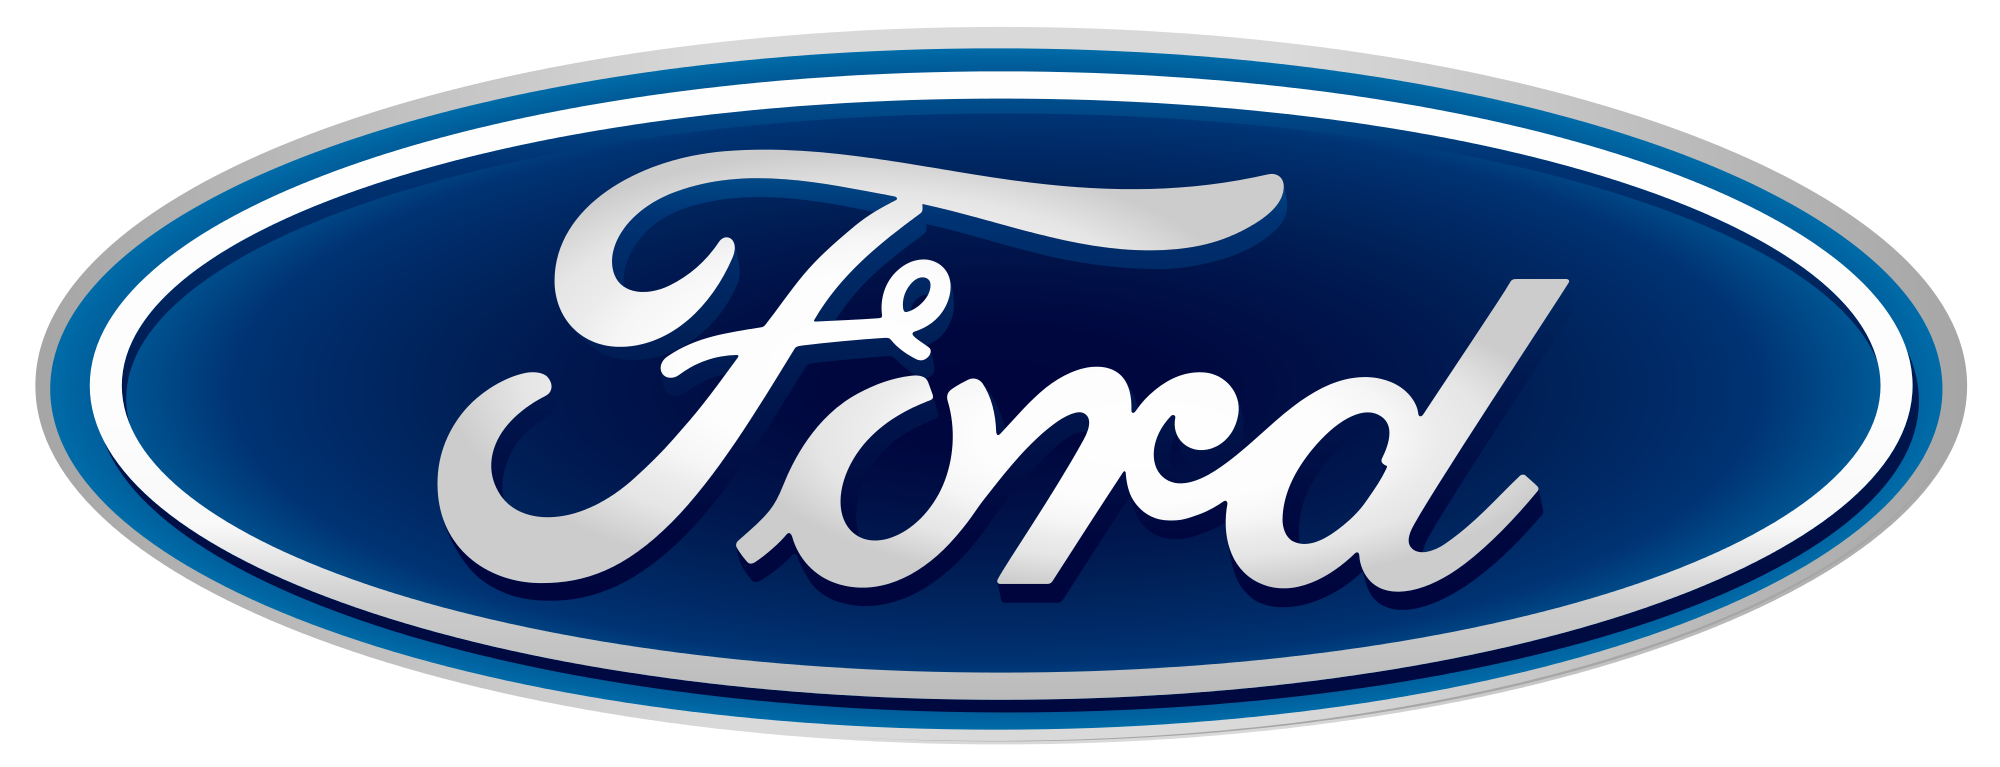 Ford logo png. Transparent background download diy